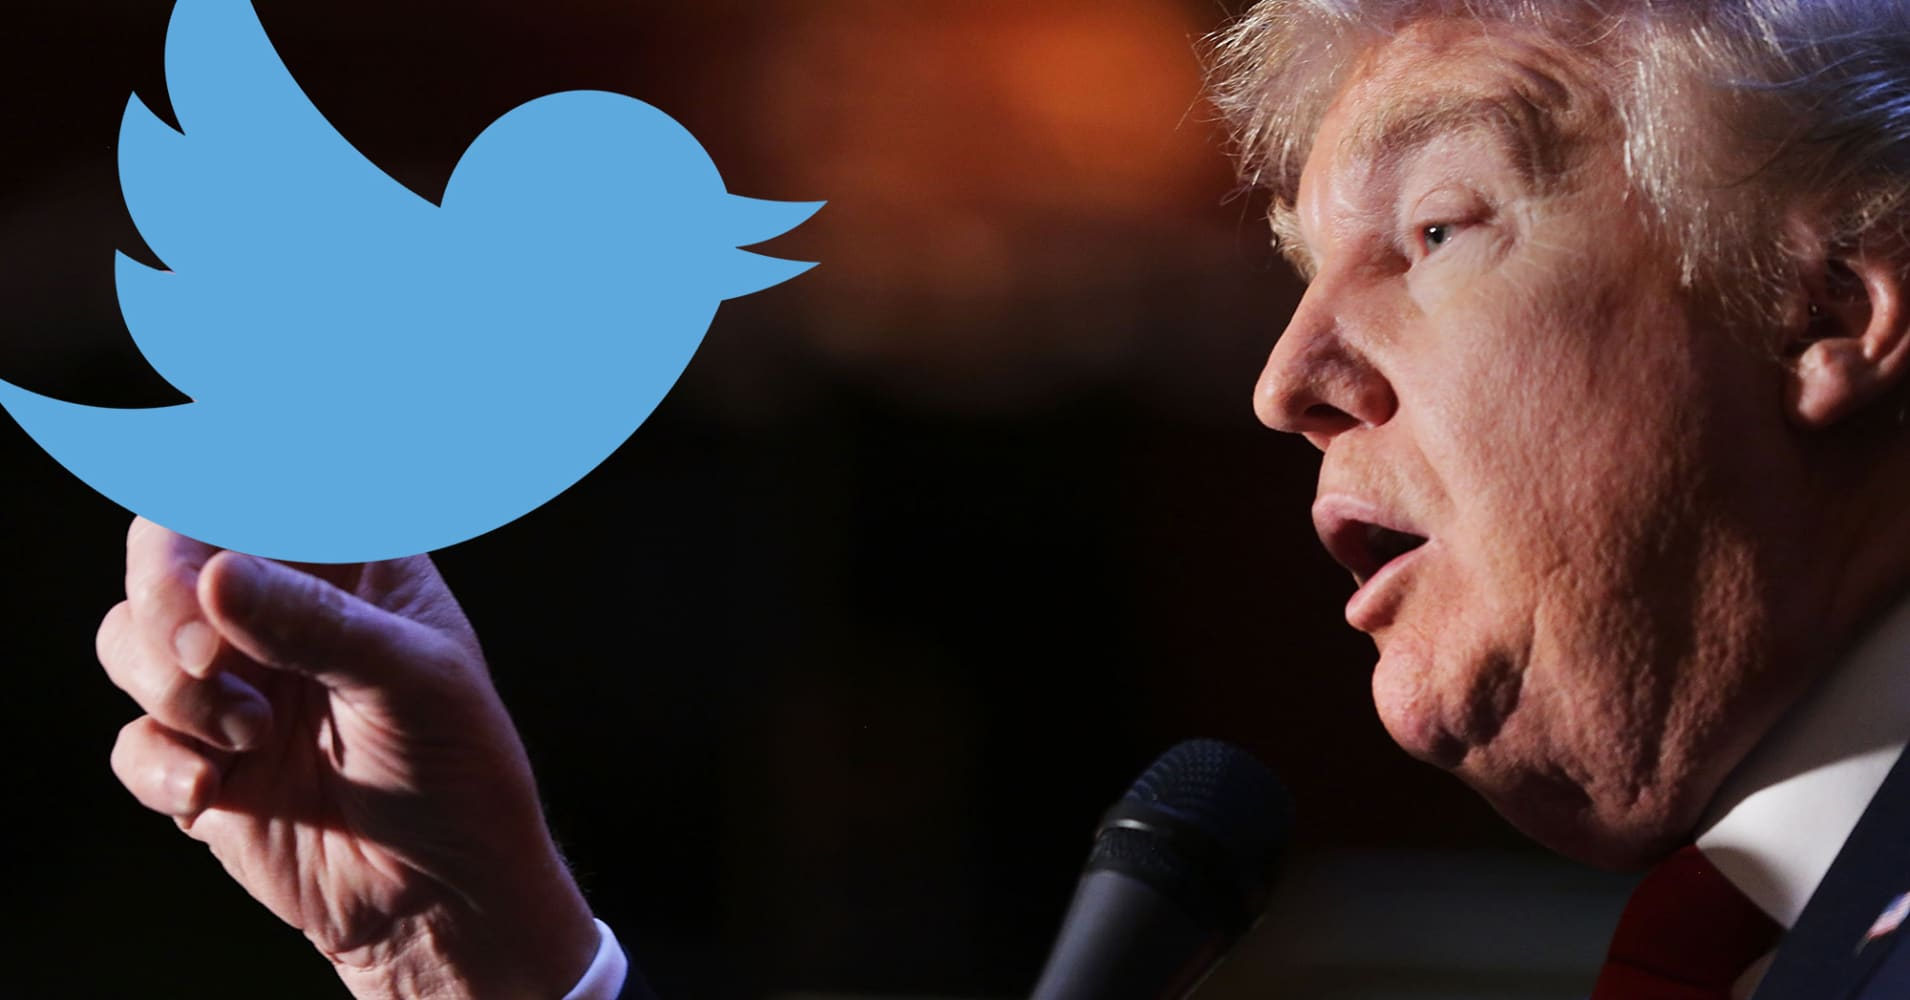 Donald Trump's Twitter Account Is A Security Disaster Waiting To Happen